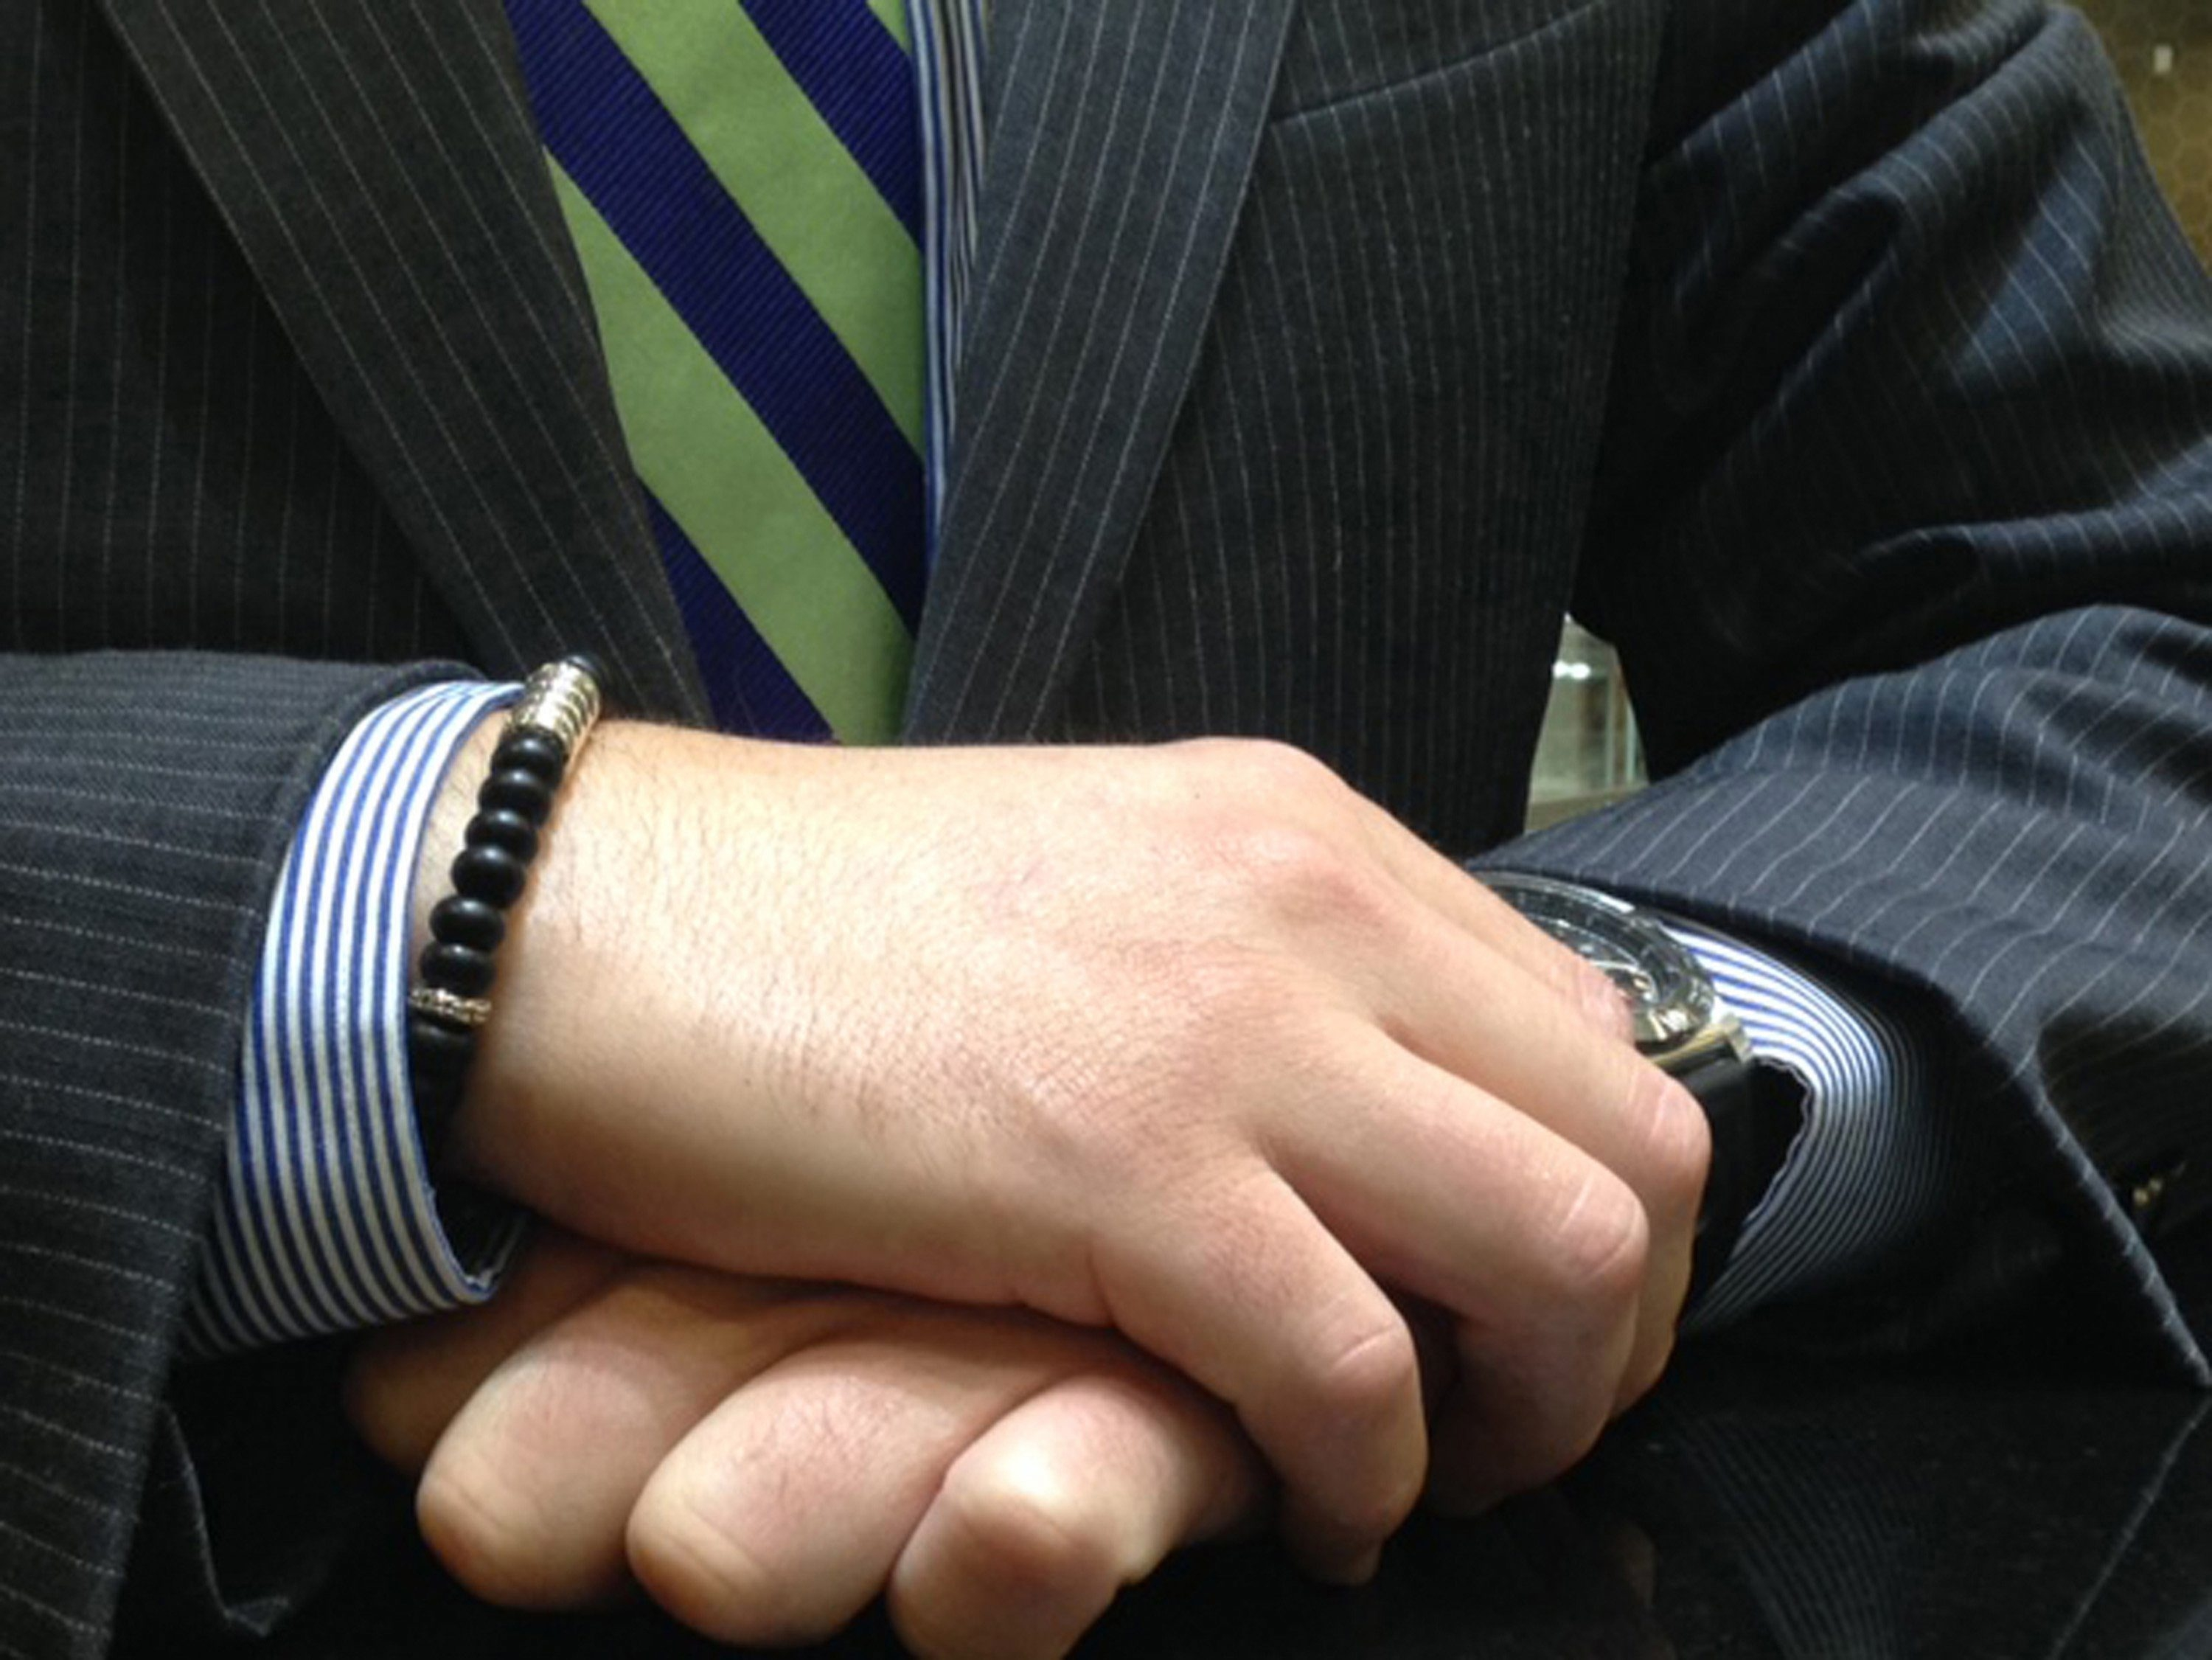 Bracelets for men include a beaded design by John Hardy, left, and a Survival Strap made of 16 feet of paracord to use in emergency situations.